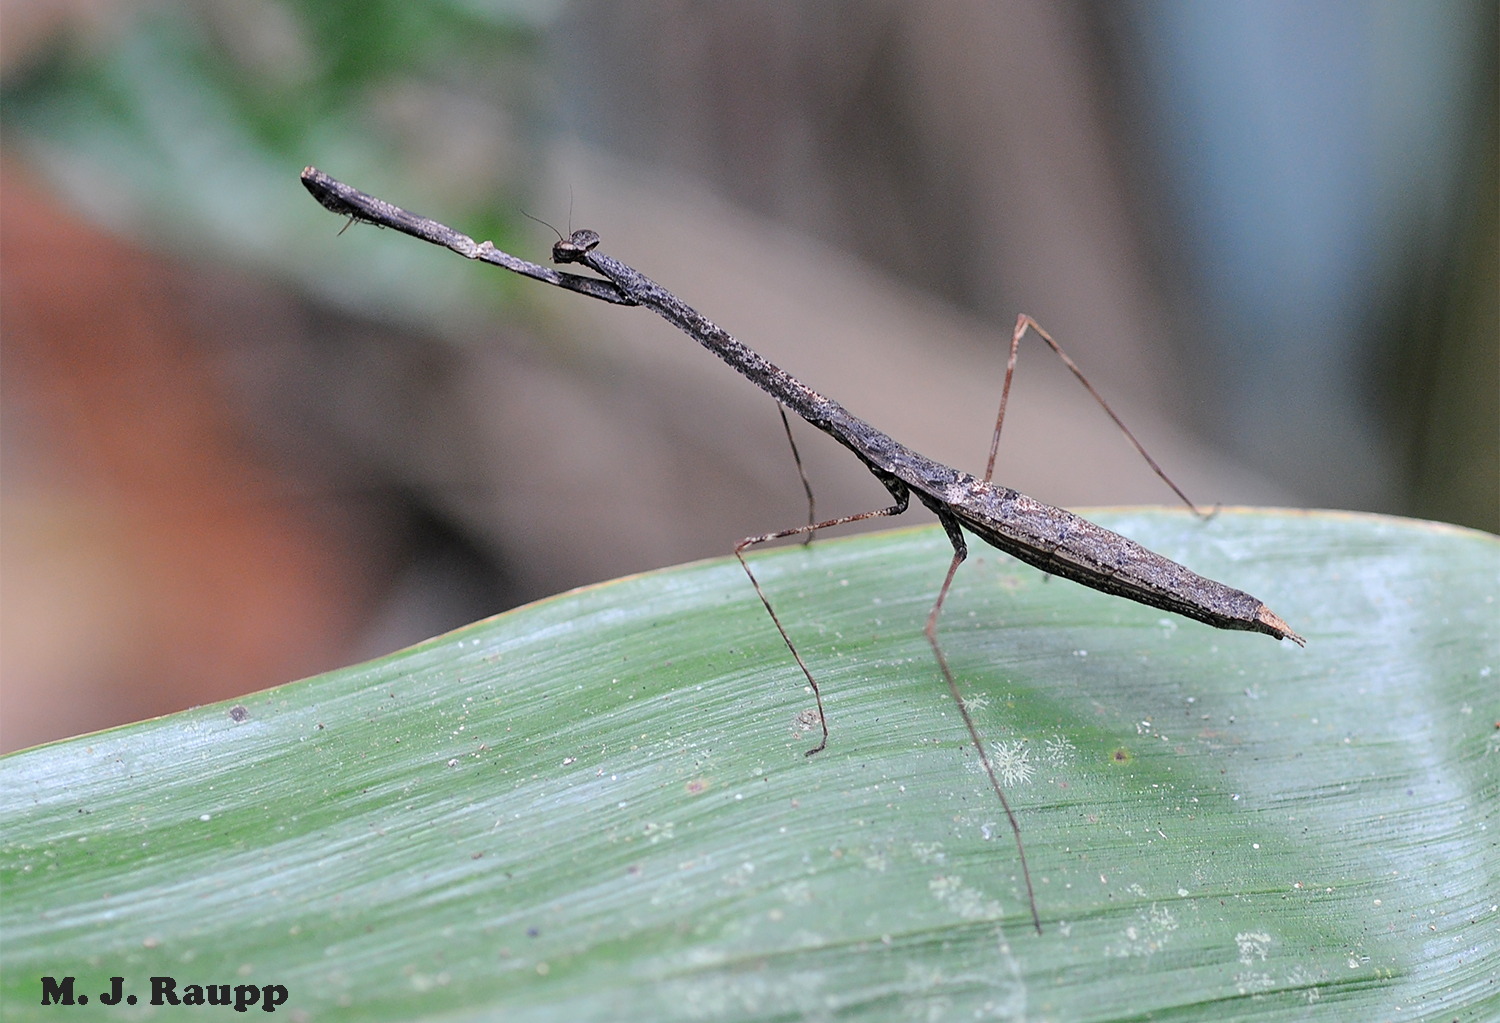 """Greatly elongated limbs, twig-brown coloration, and the ability to remain motionless seemingly for hours, give this rainforest mantis a look that says, """"Don't bother with a second look, I'm just a twig."""""""